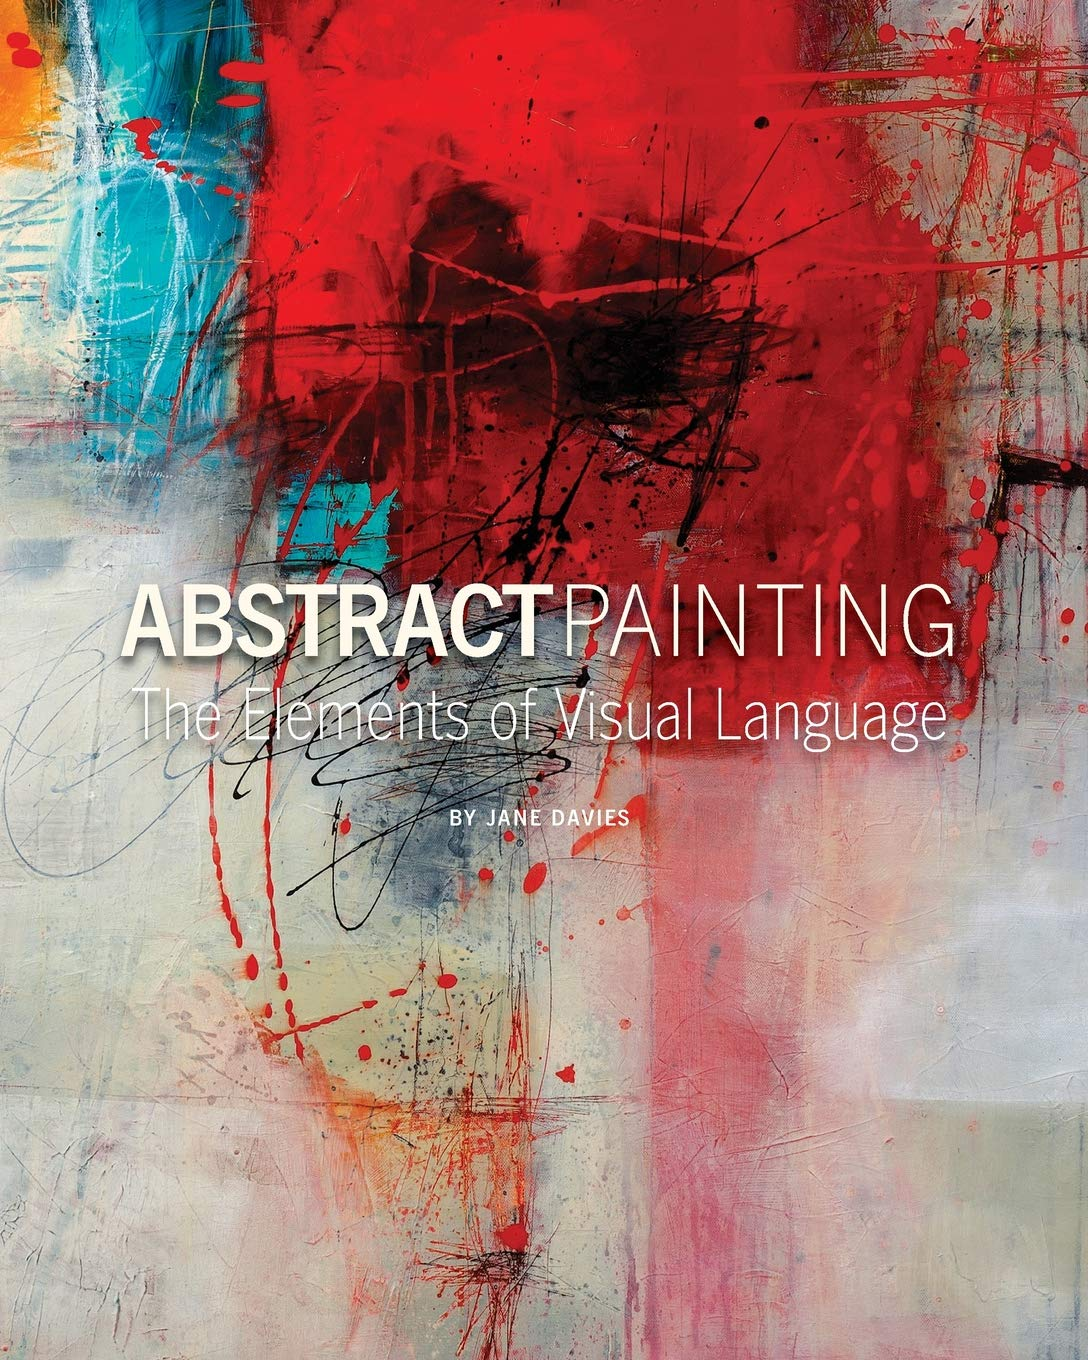 Download Abstract Painting: The Elements of Visual Language ePub fb2 ebook